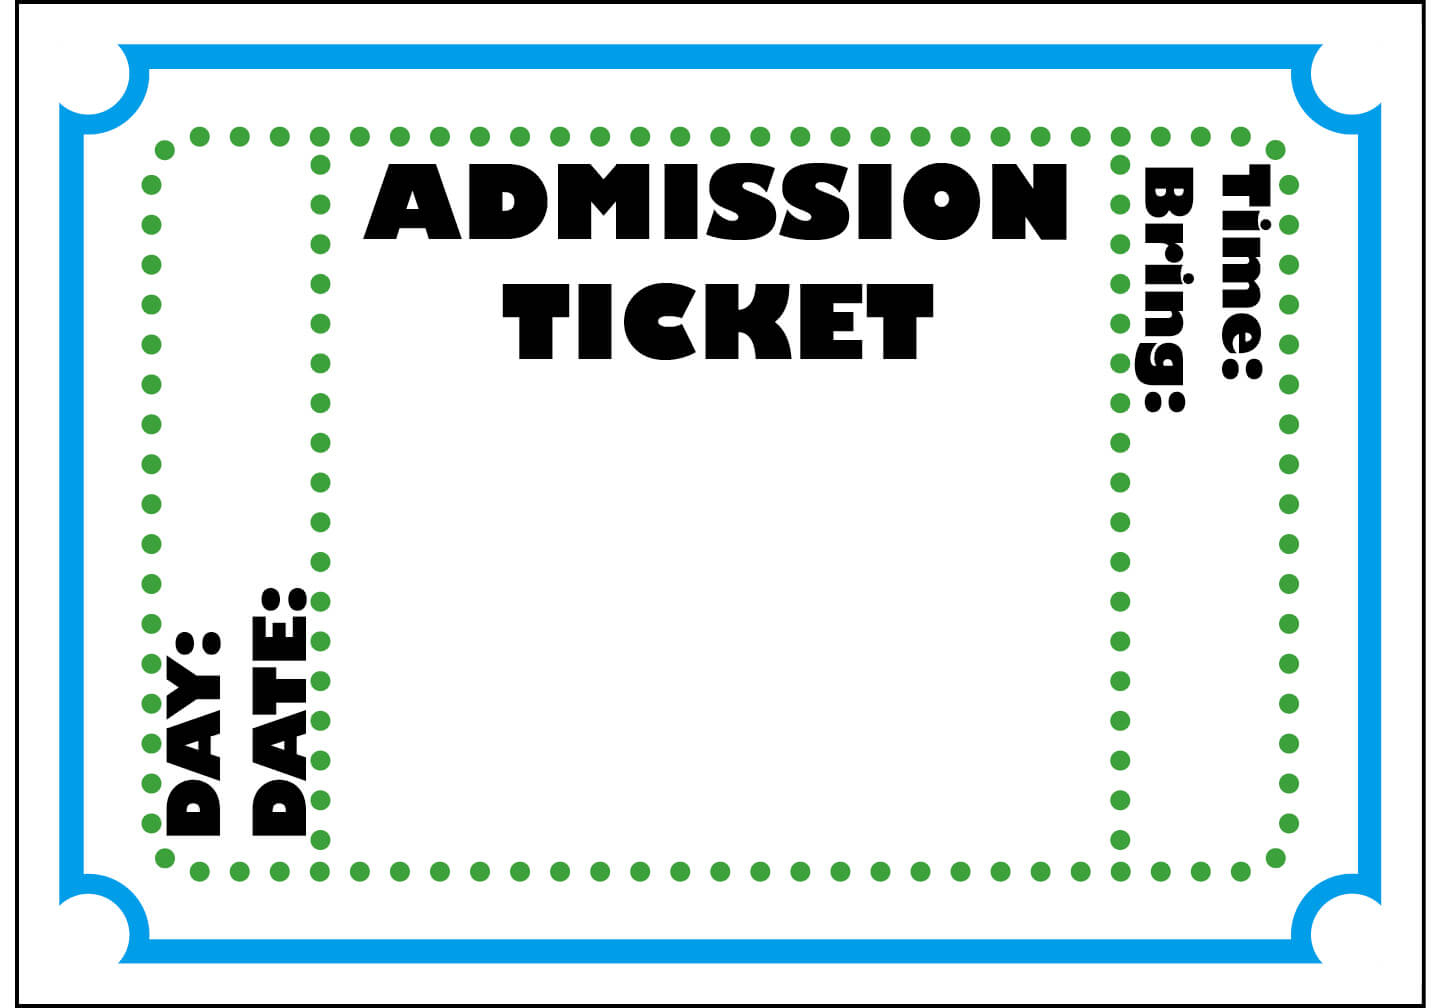 Free Blank Ticket Cliparts, Download Free Clip Art, Free Regarding Blank Admission Ticket Template